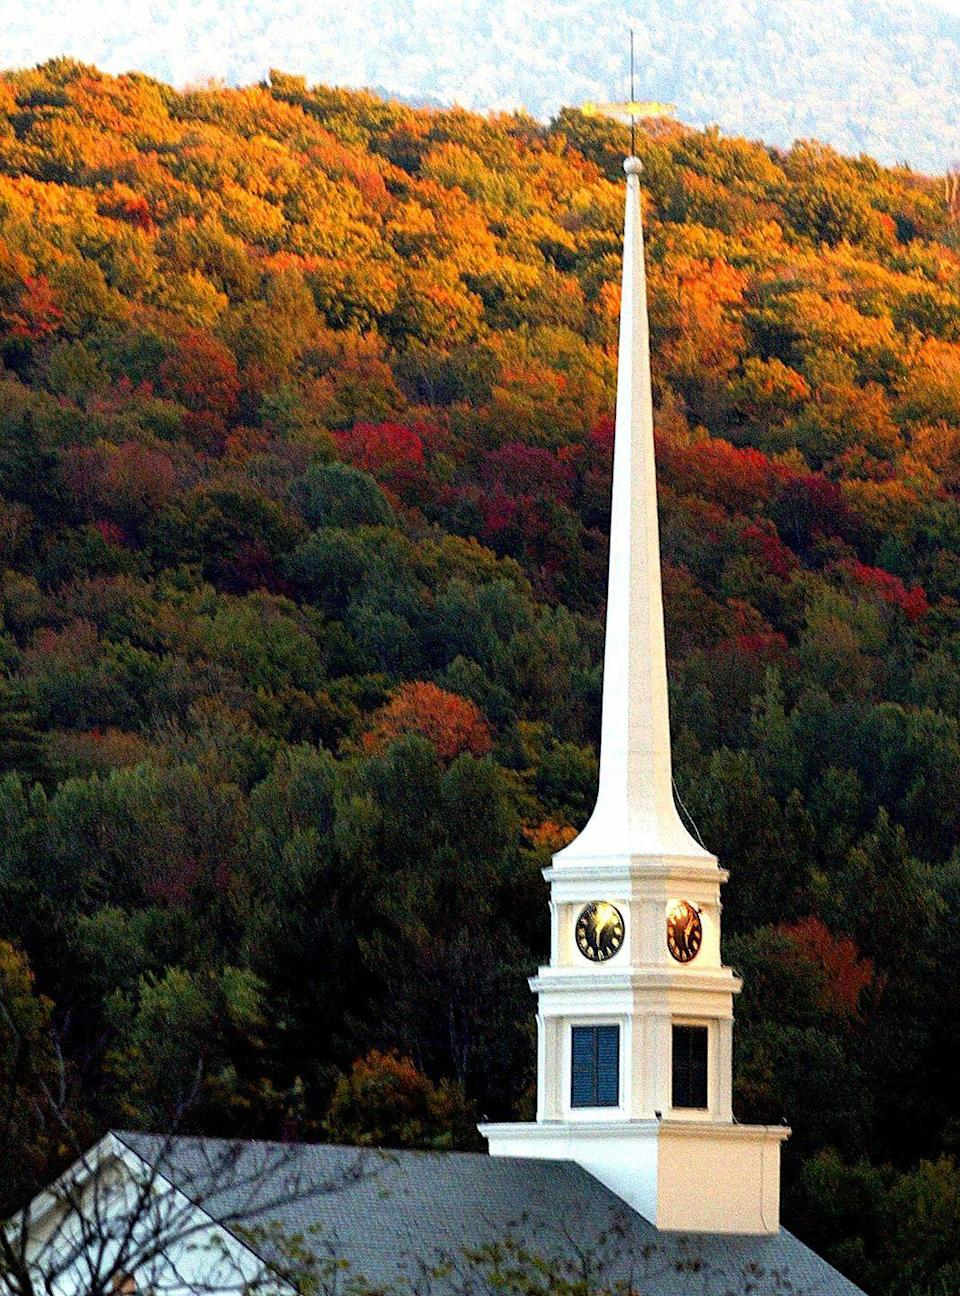 """<p>Most people travel to the area for the popular Mount Mansfield during the winter season. But months before, you'll want to check out the fall foliage in this small town. </p><p><strong>RELATED:</strong> <a href=""""https://www.goodhousekeeping.com/life/entertainment/g3835/best-fall-books/"""" rel=""""nofollow noopener"""" target=""""_blank"""" data-ylk=""""slk:20 New Fall Books You Have to Read This Season"""" class=""""link rapid-noclick-resp"""">20 New Fall Books You Have to Read This Season</a><br></p>"""